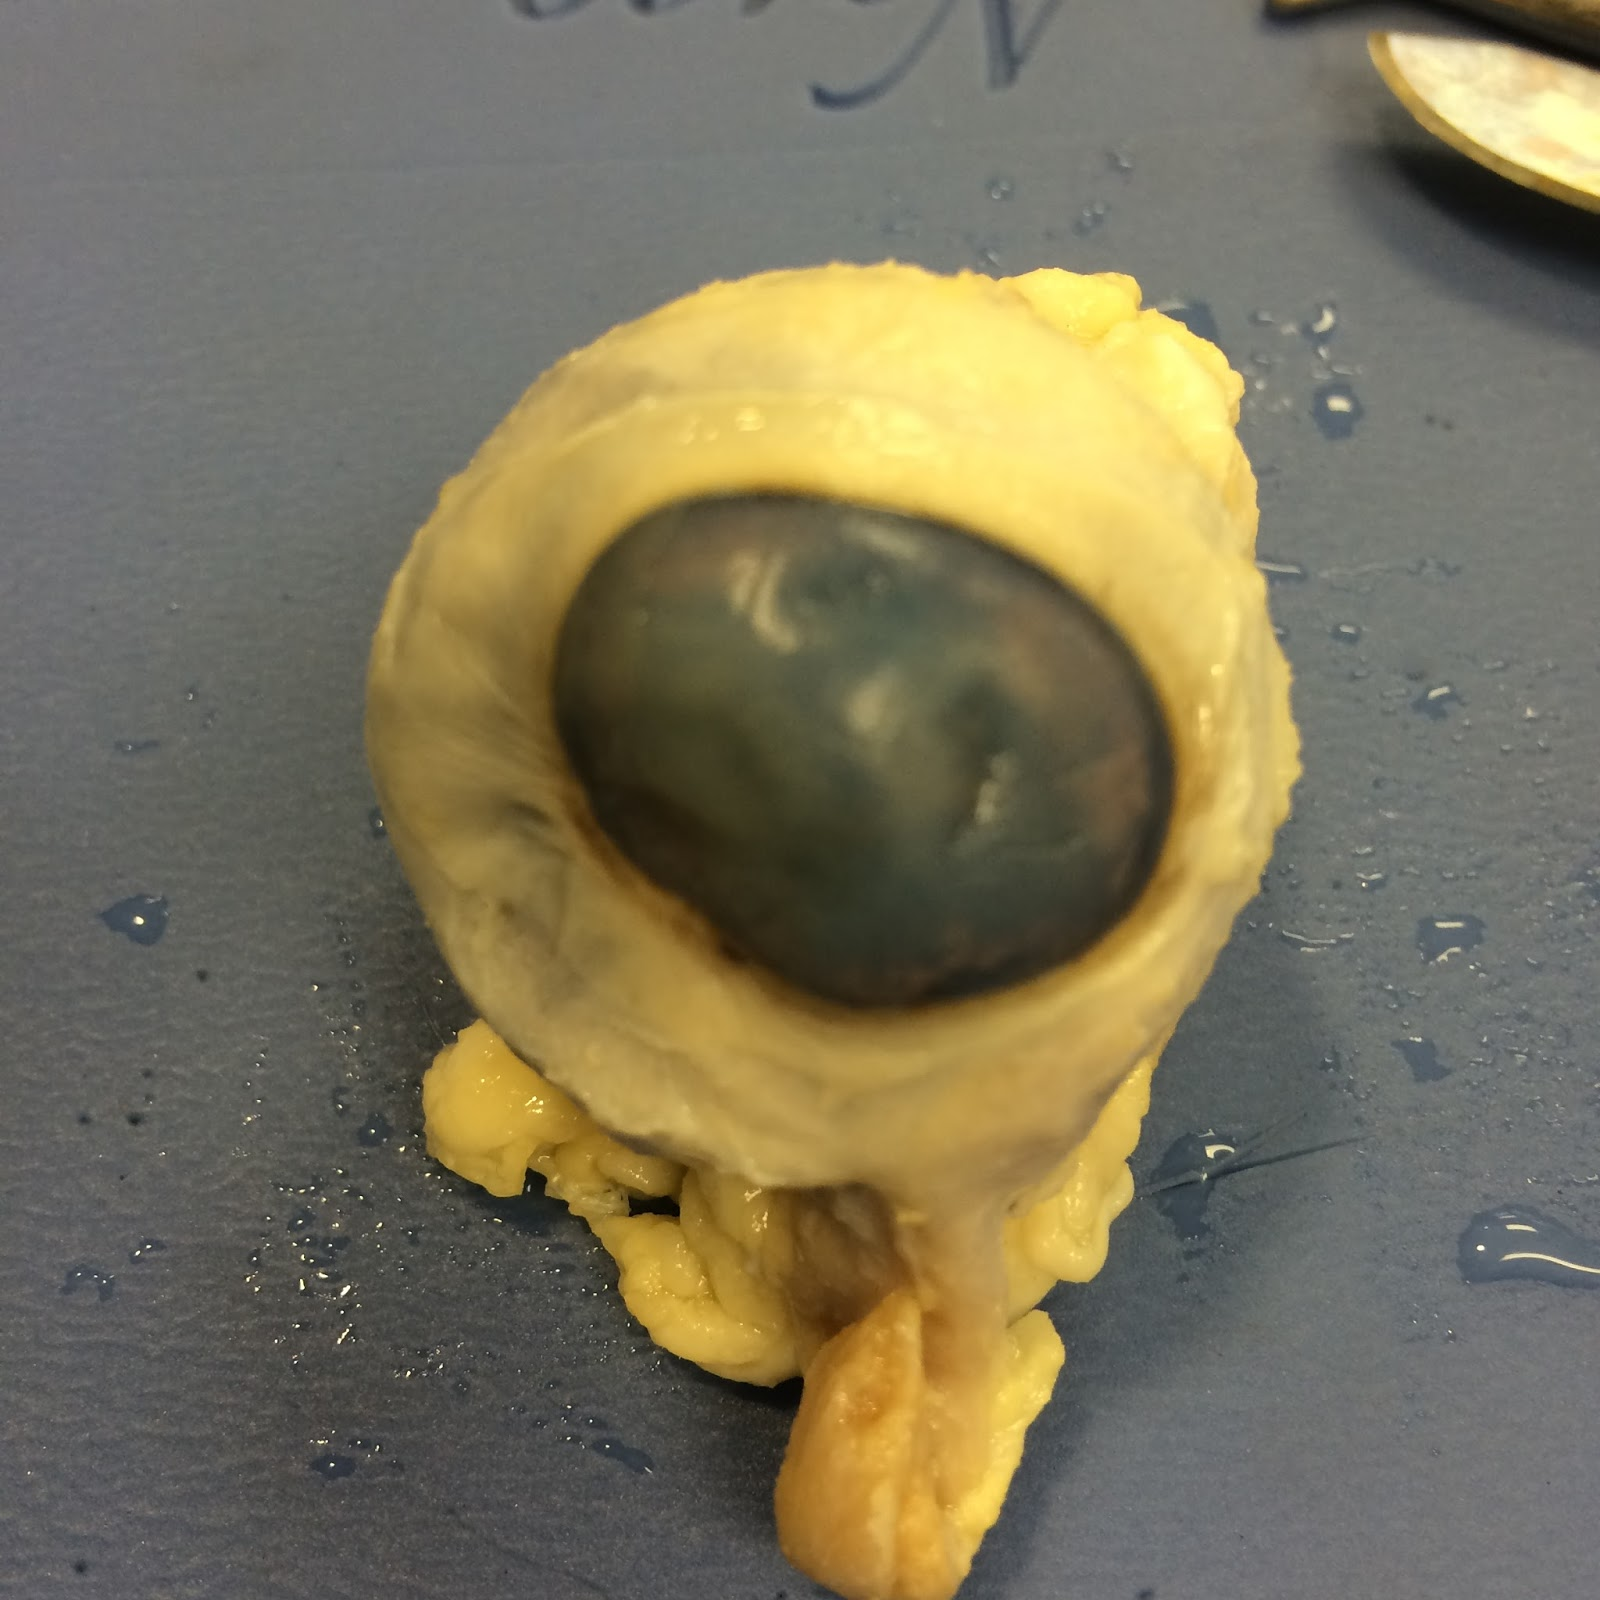 Anatomy Sheep Eye Dissection Labeled